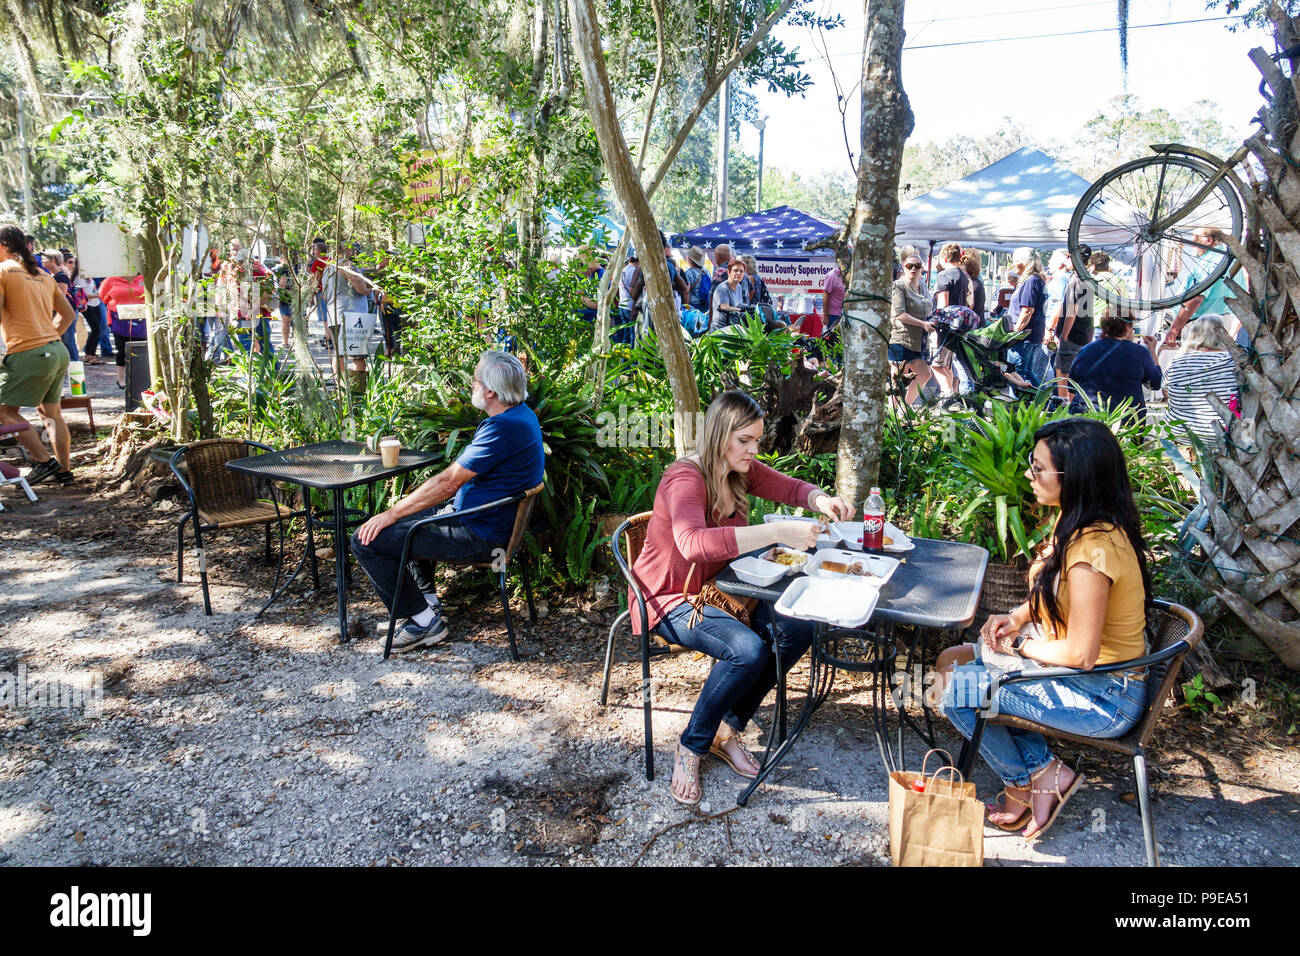 Florida Micanopy Fall Harvest Festival annual small town community event booths stalls vendors buying selling shade table eating woman friends - Stock Image